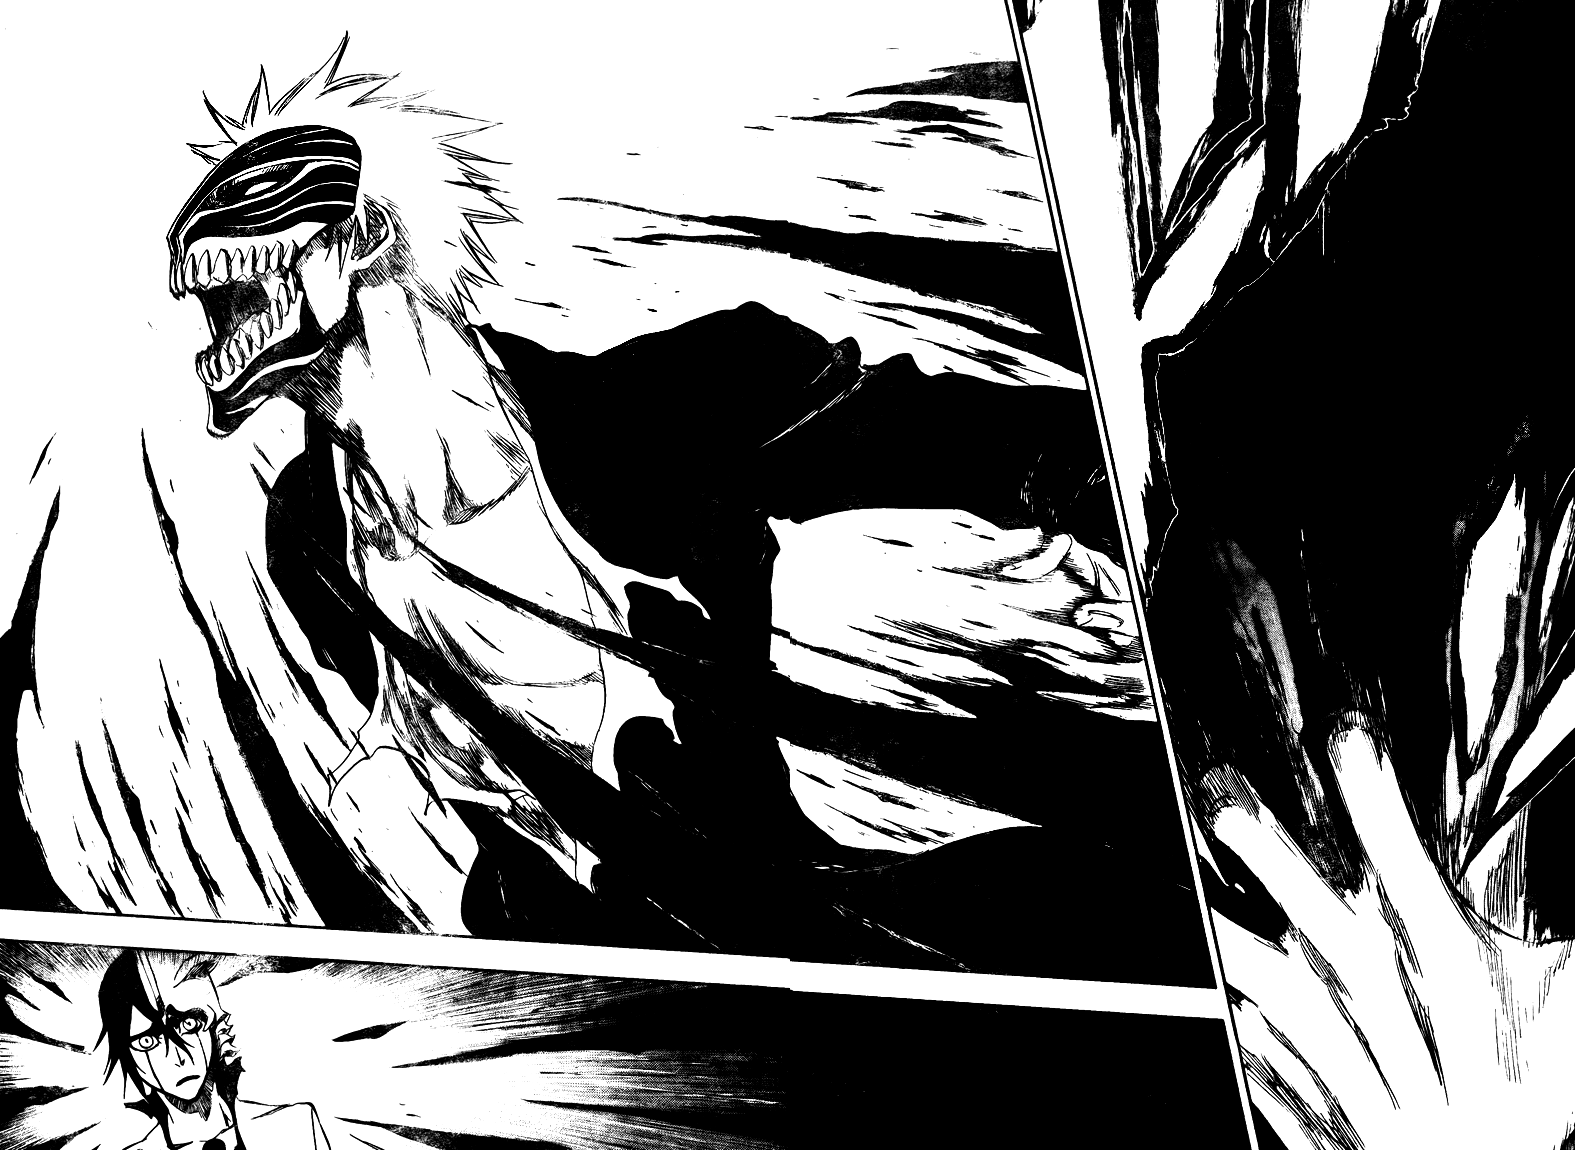 A panel from the manga Bleach